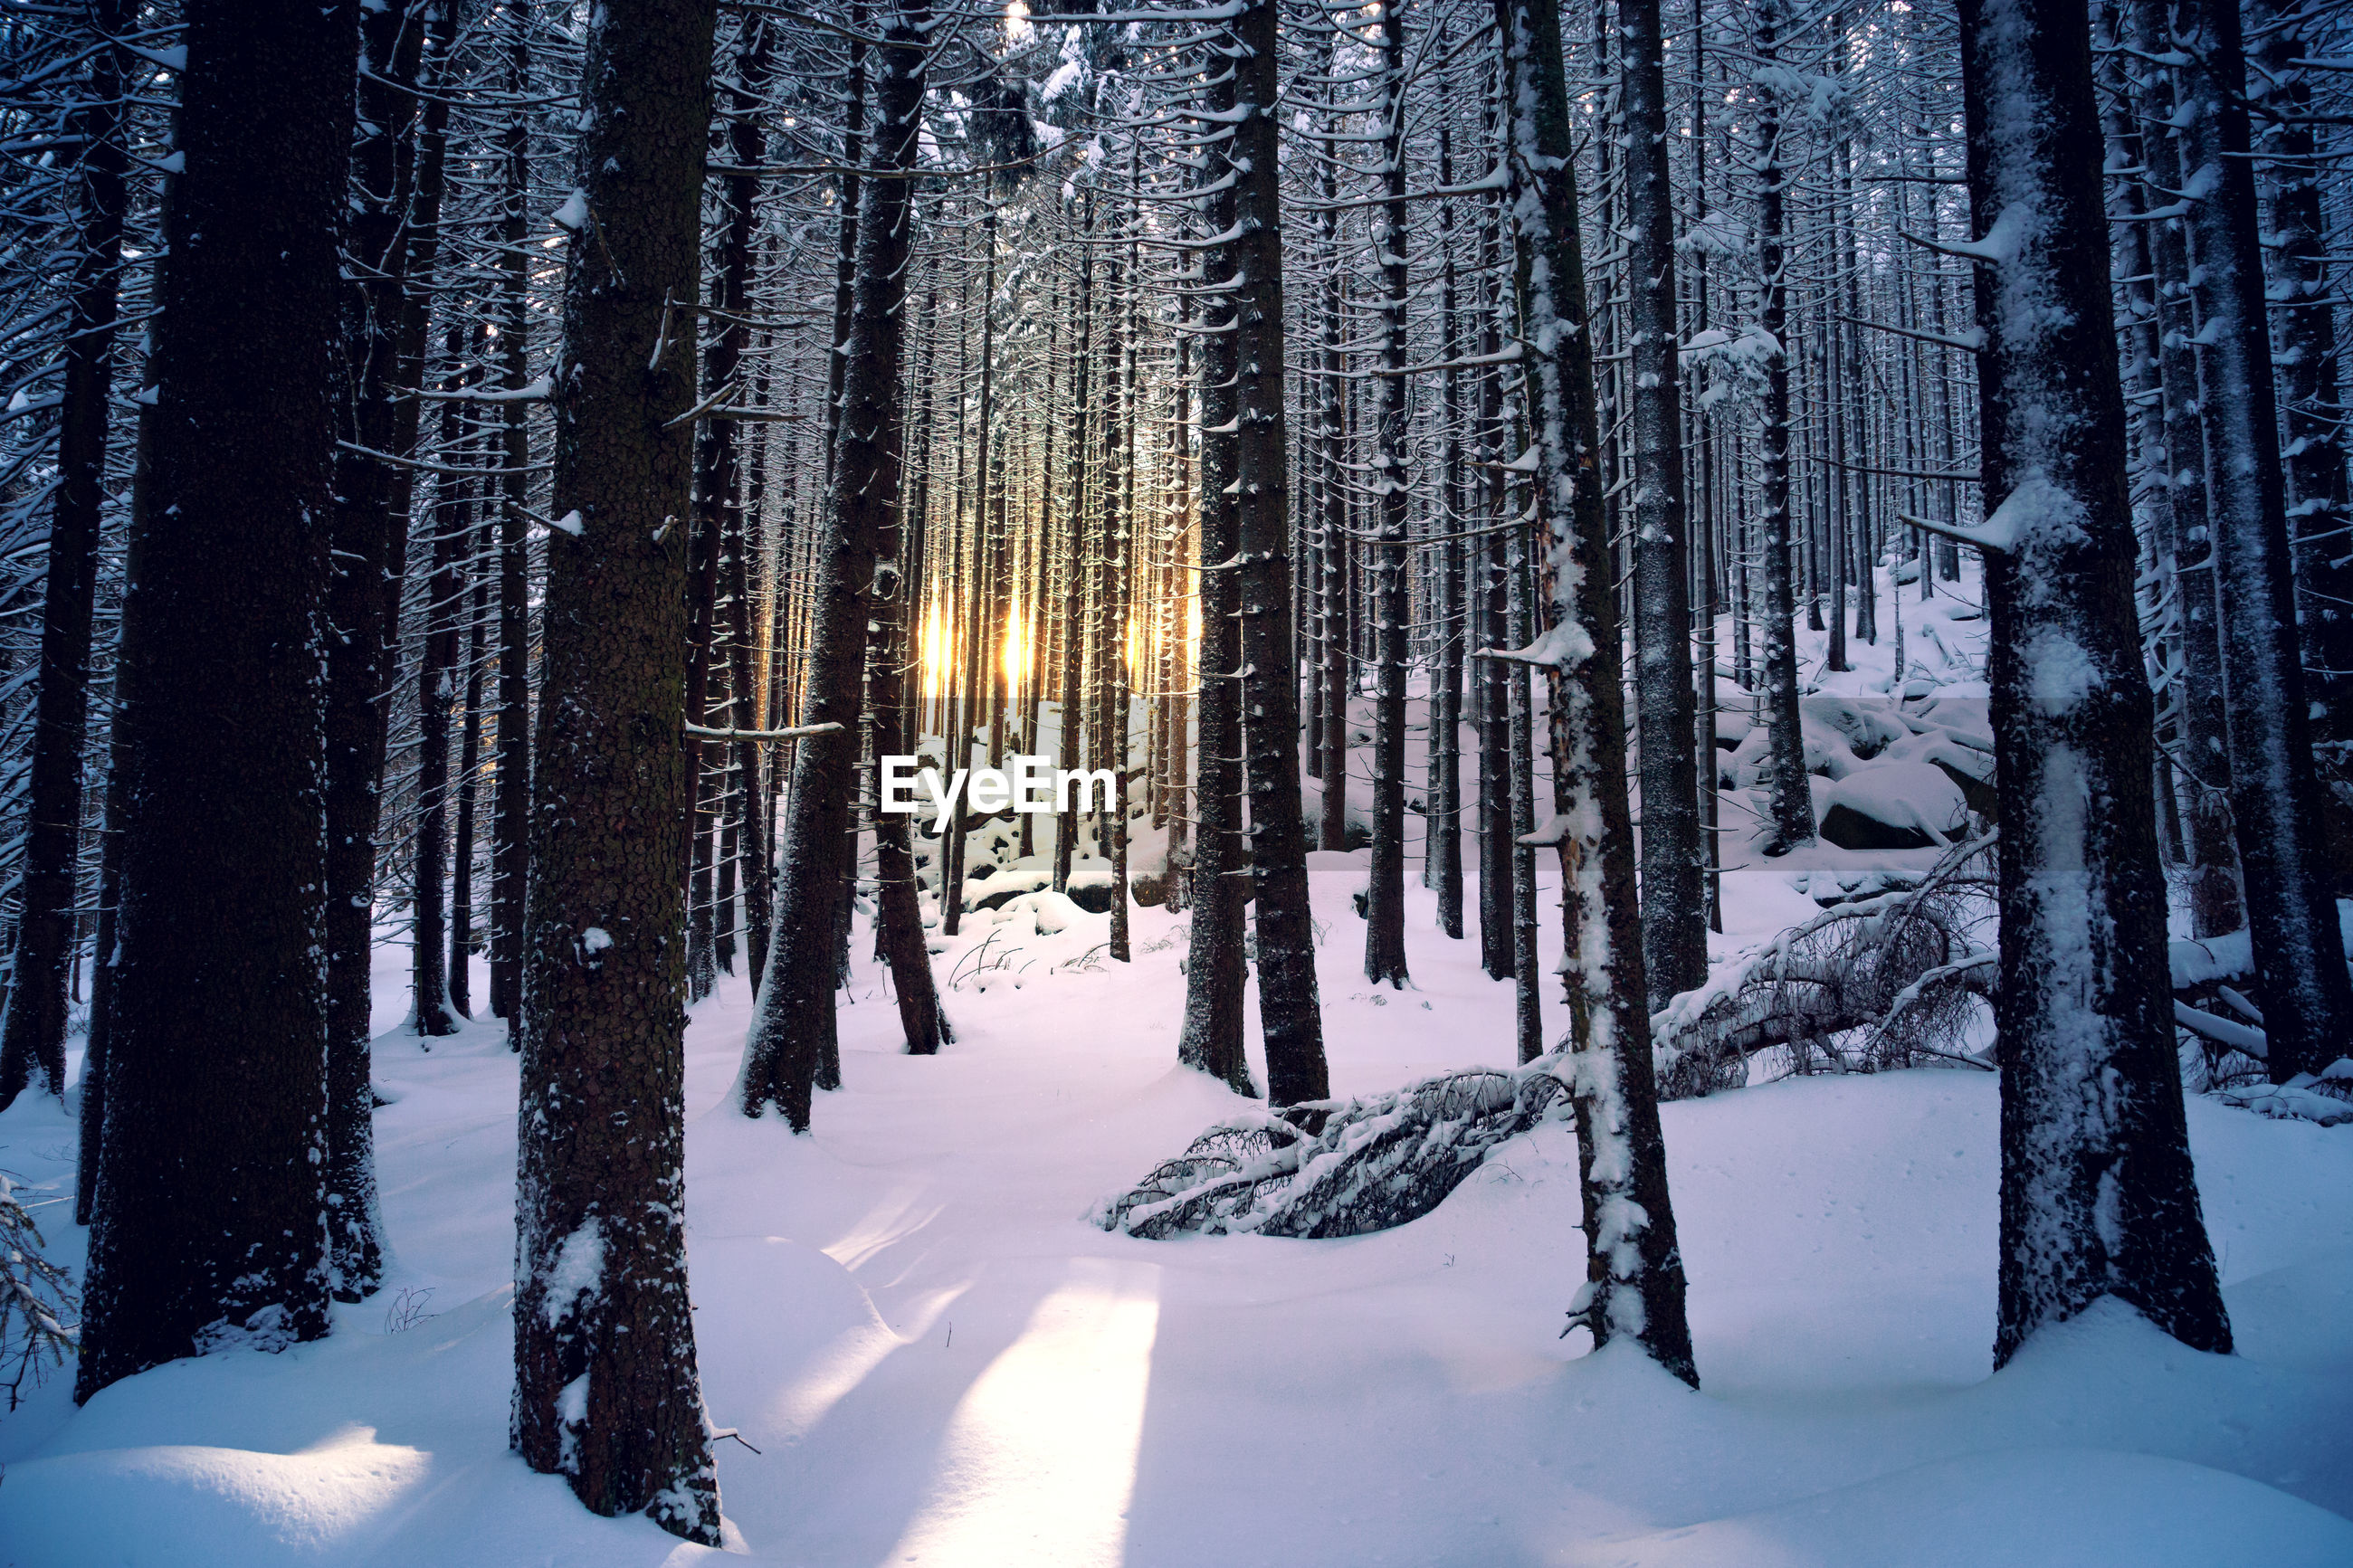 Sunset in deep snowy forest